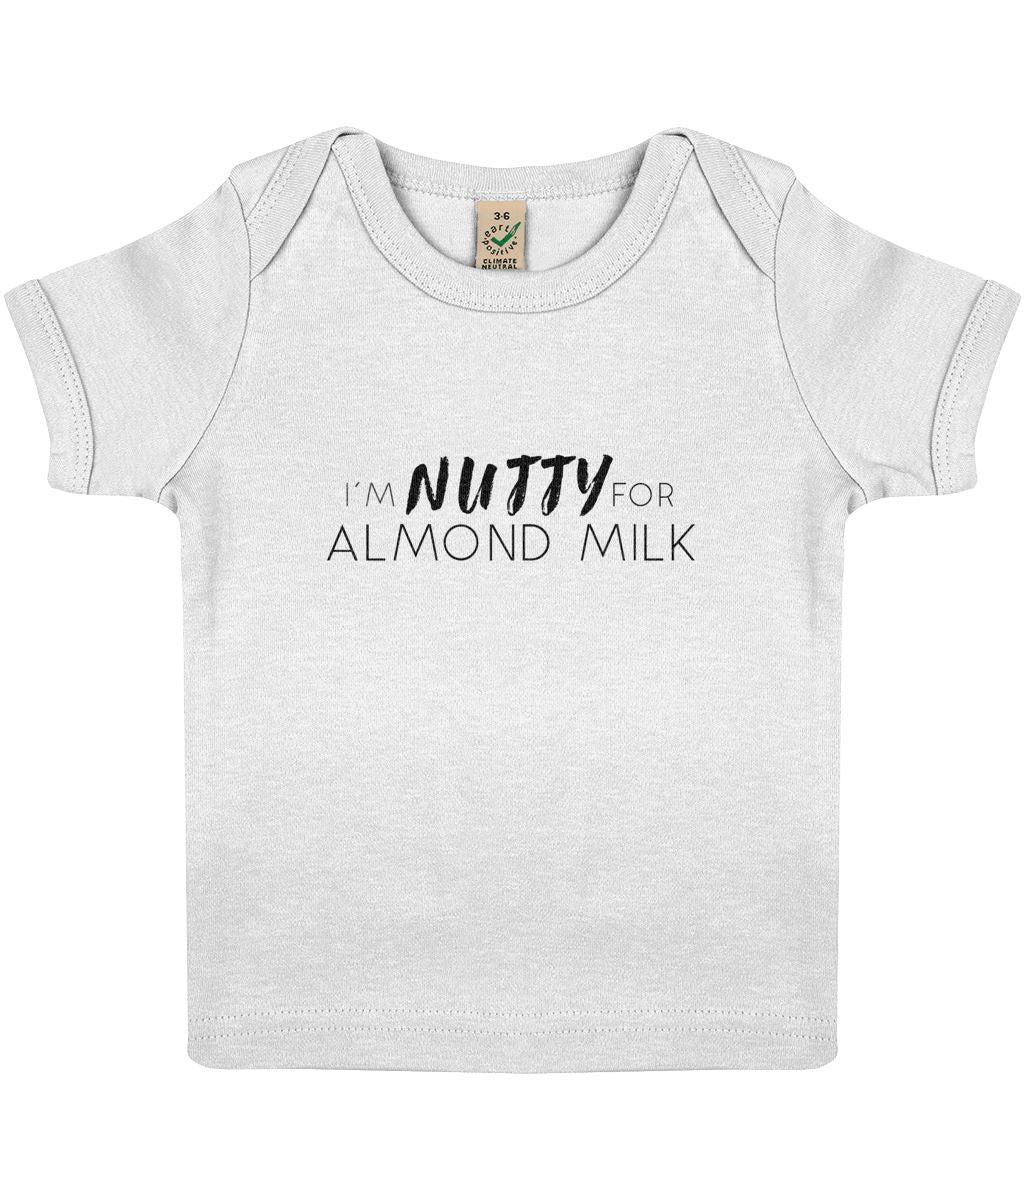 """I'm Nutty For Almond Milk"" Baby Lap Vegan T-Shirt Clothing Vegan Original 12-18 months White"